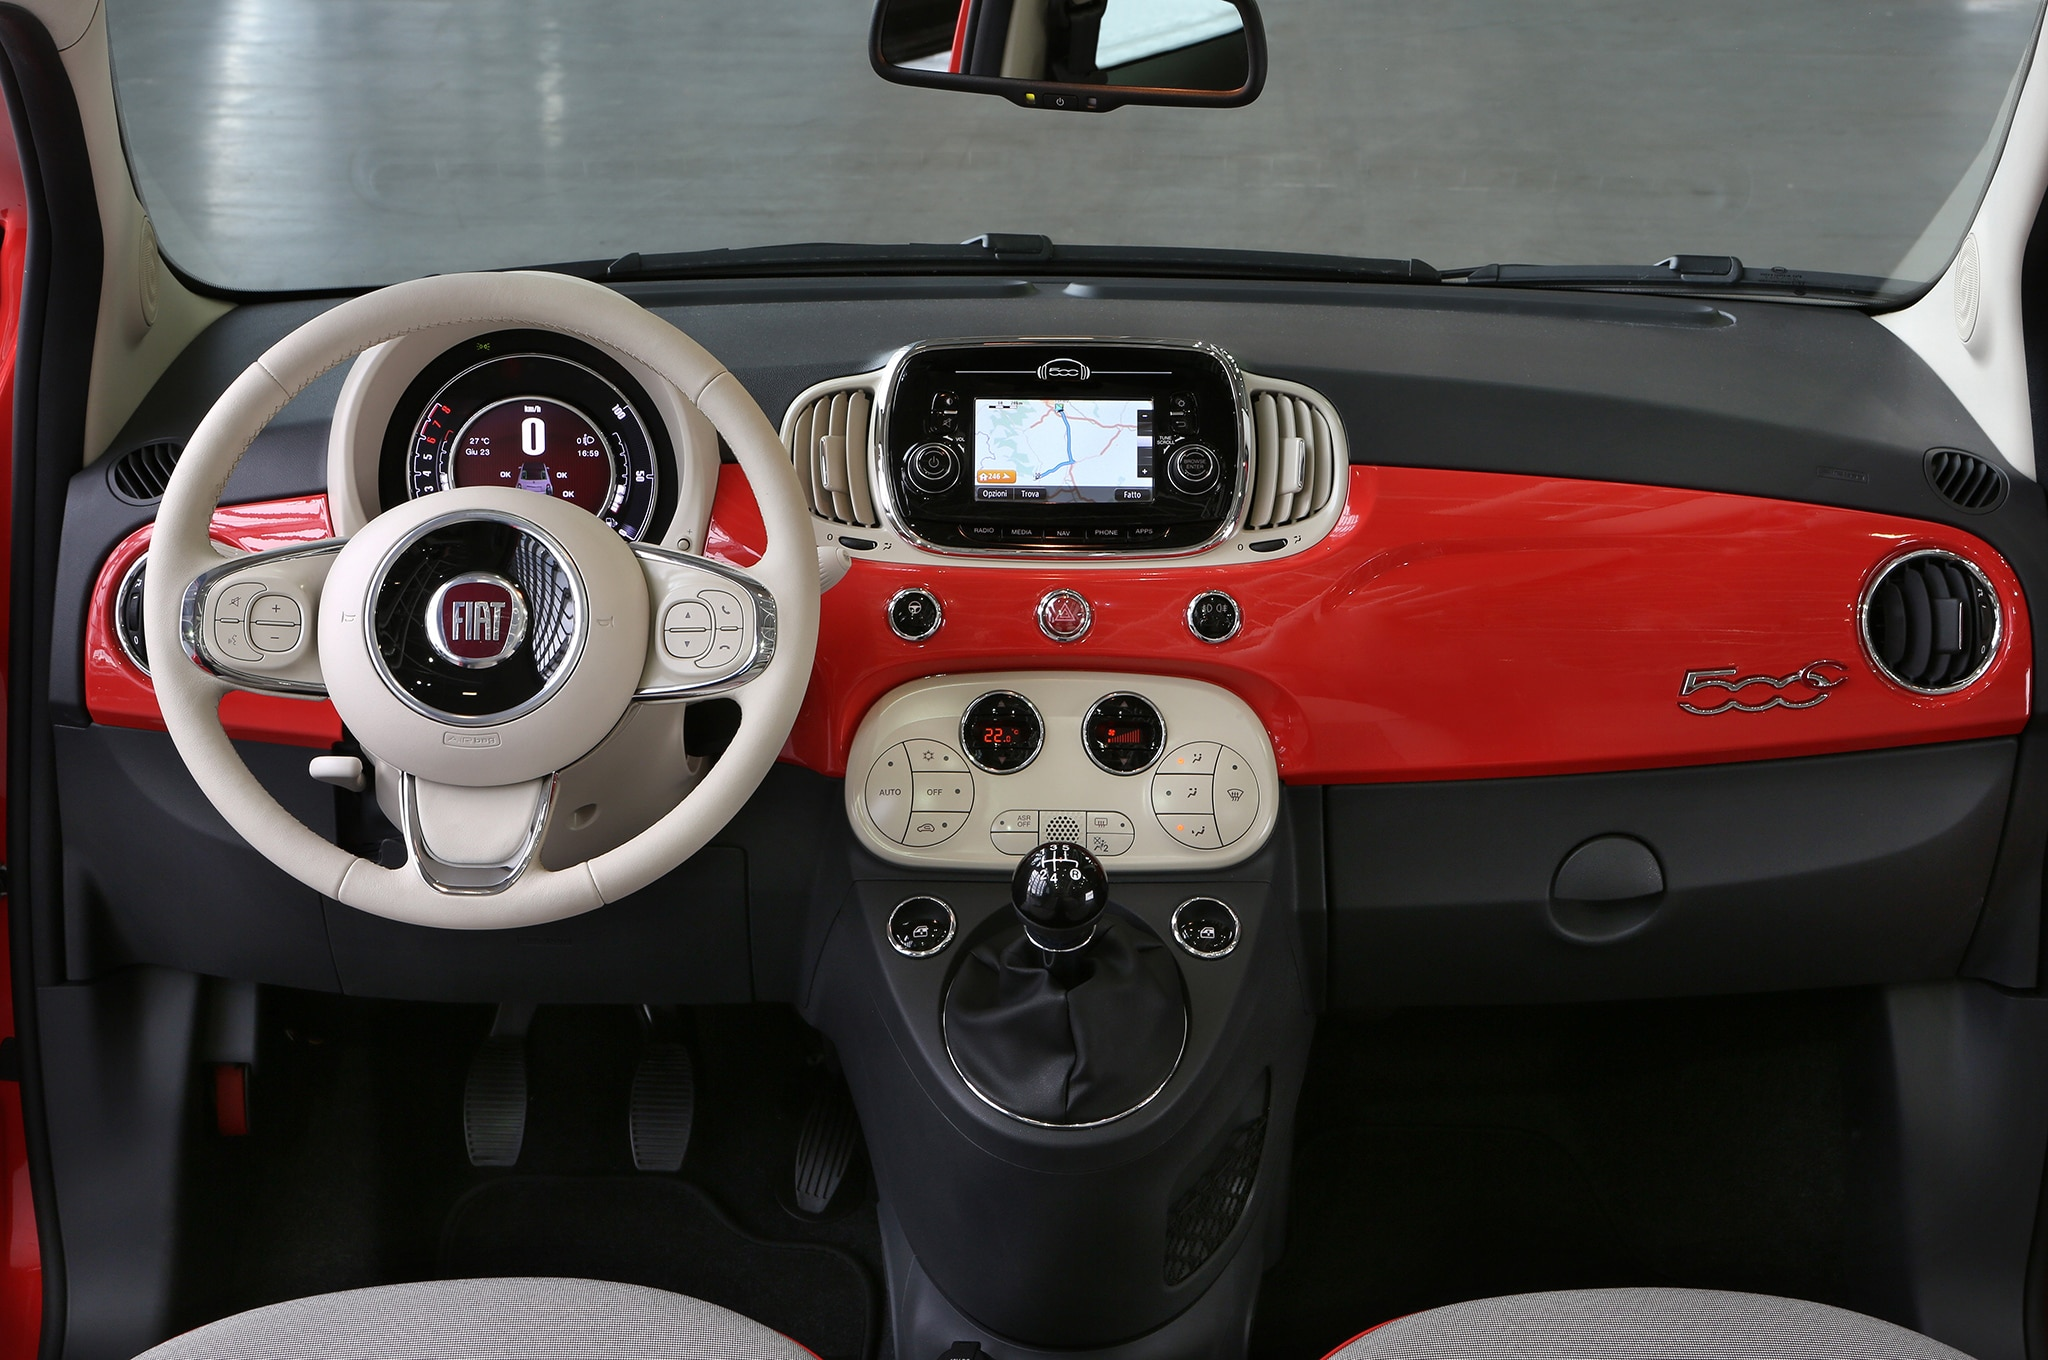 fiat 500 abarth interior. 249 fiat 500 abarth interior t